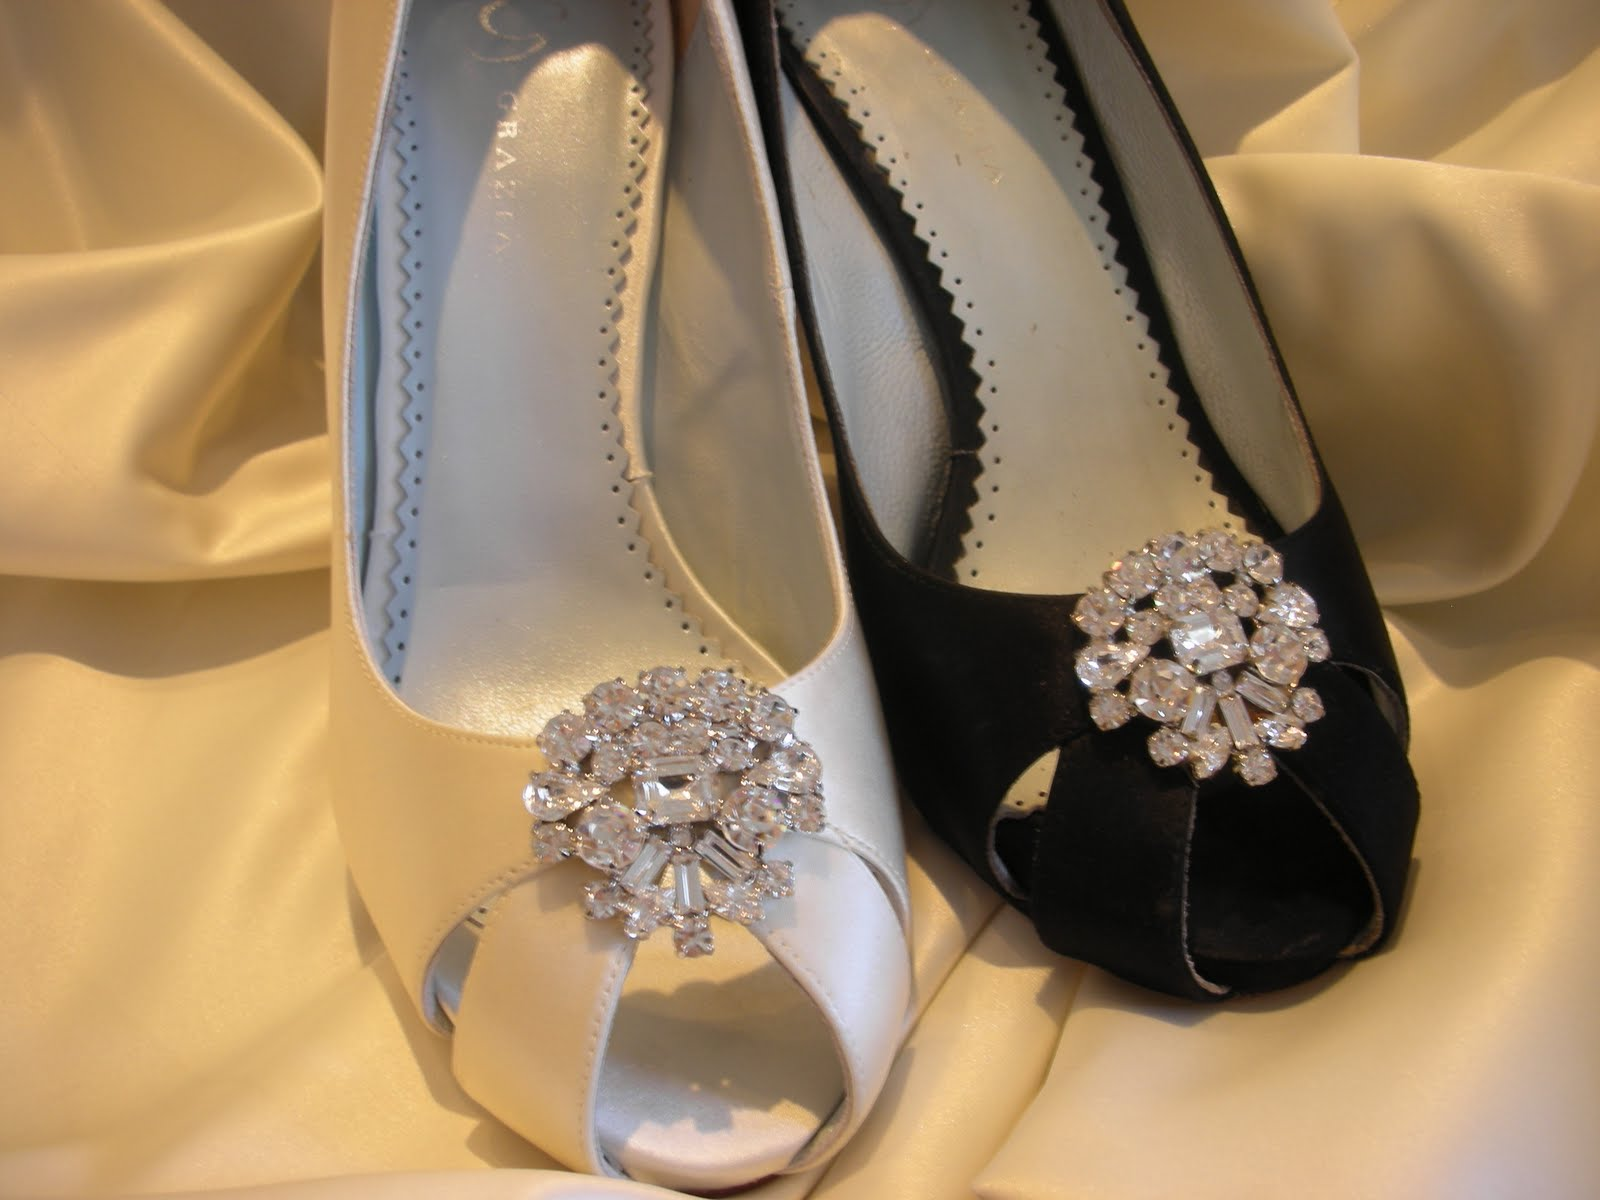 Dyeing Bridal Shoes After The Wedding